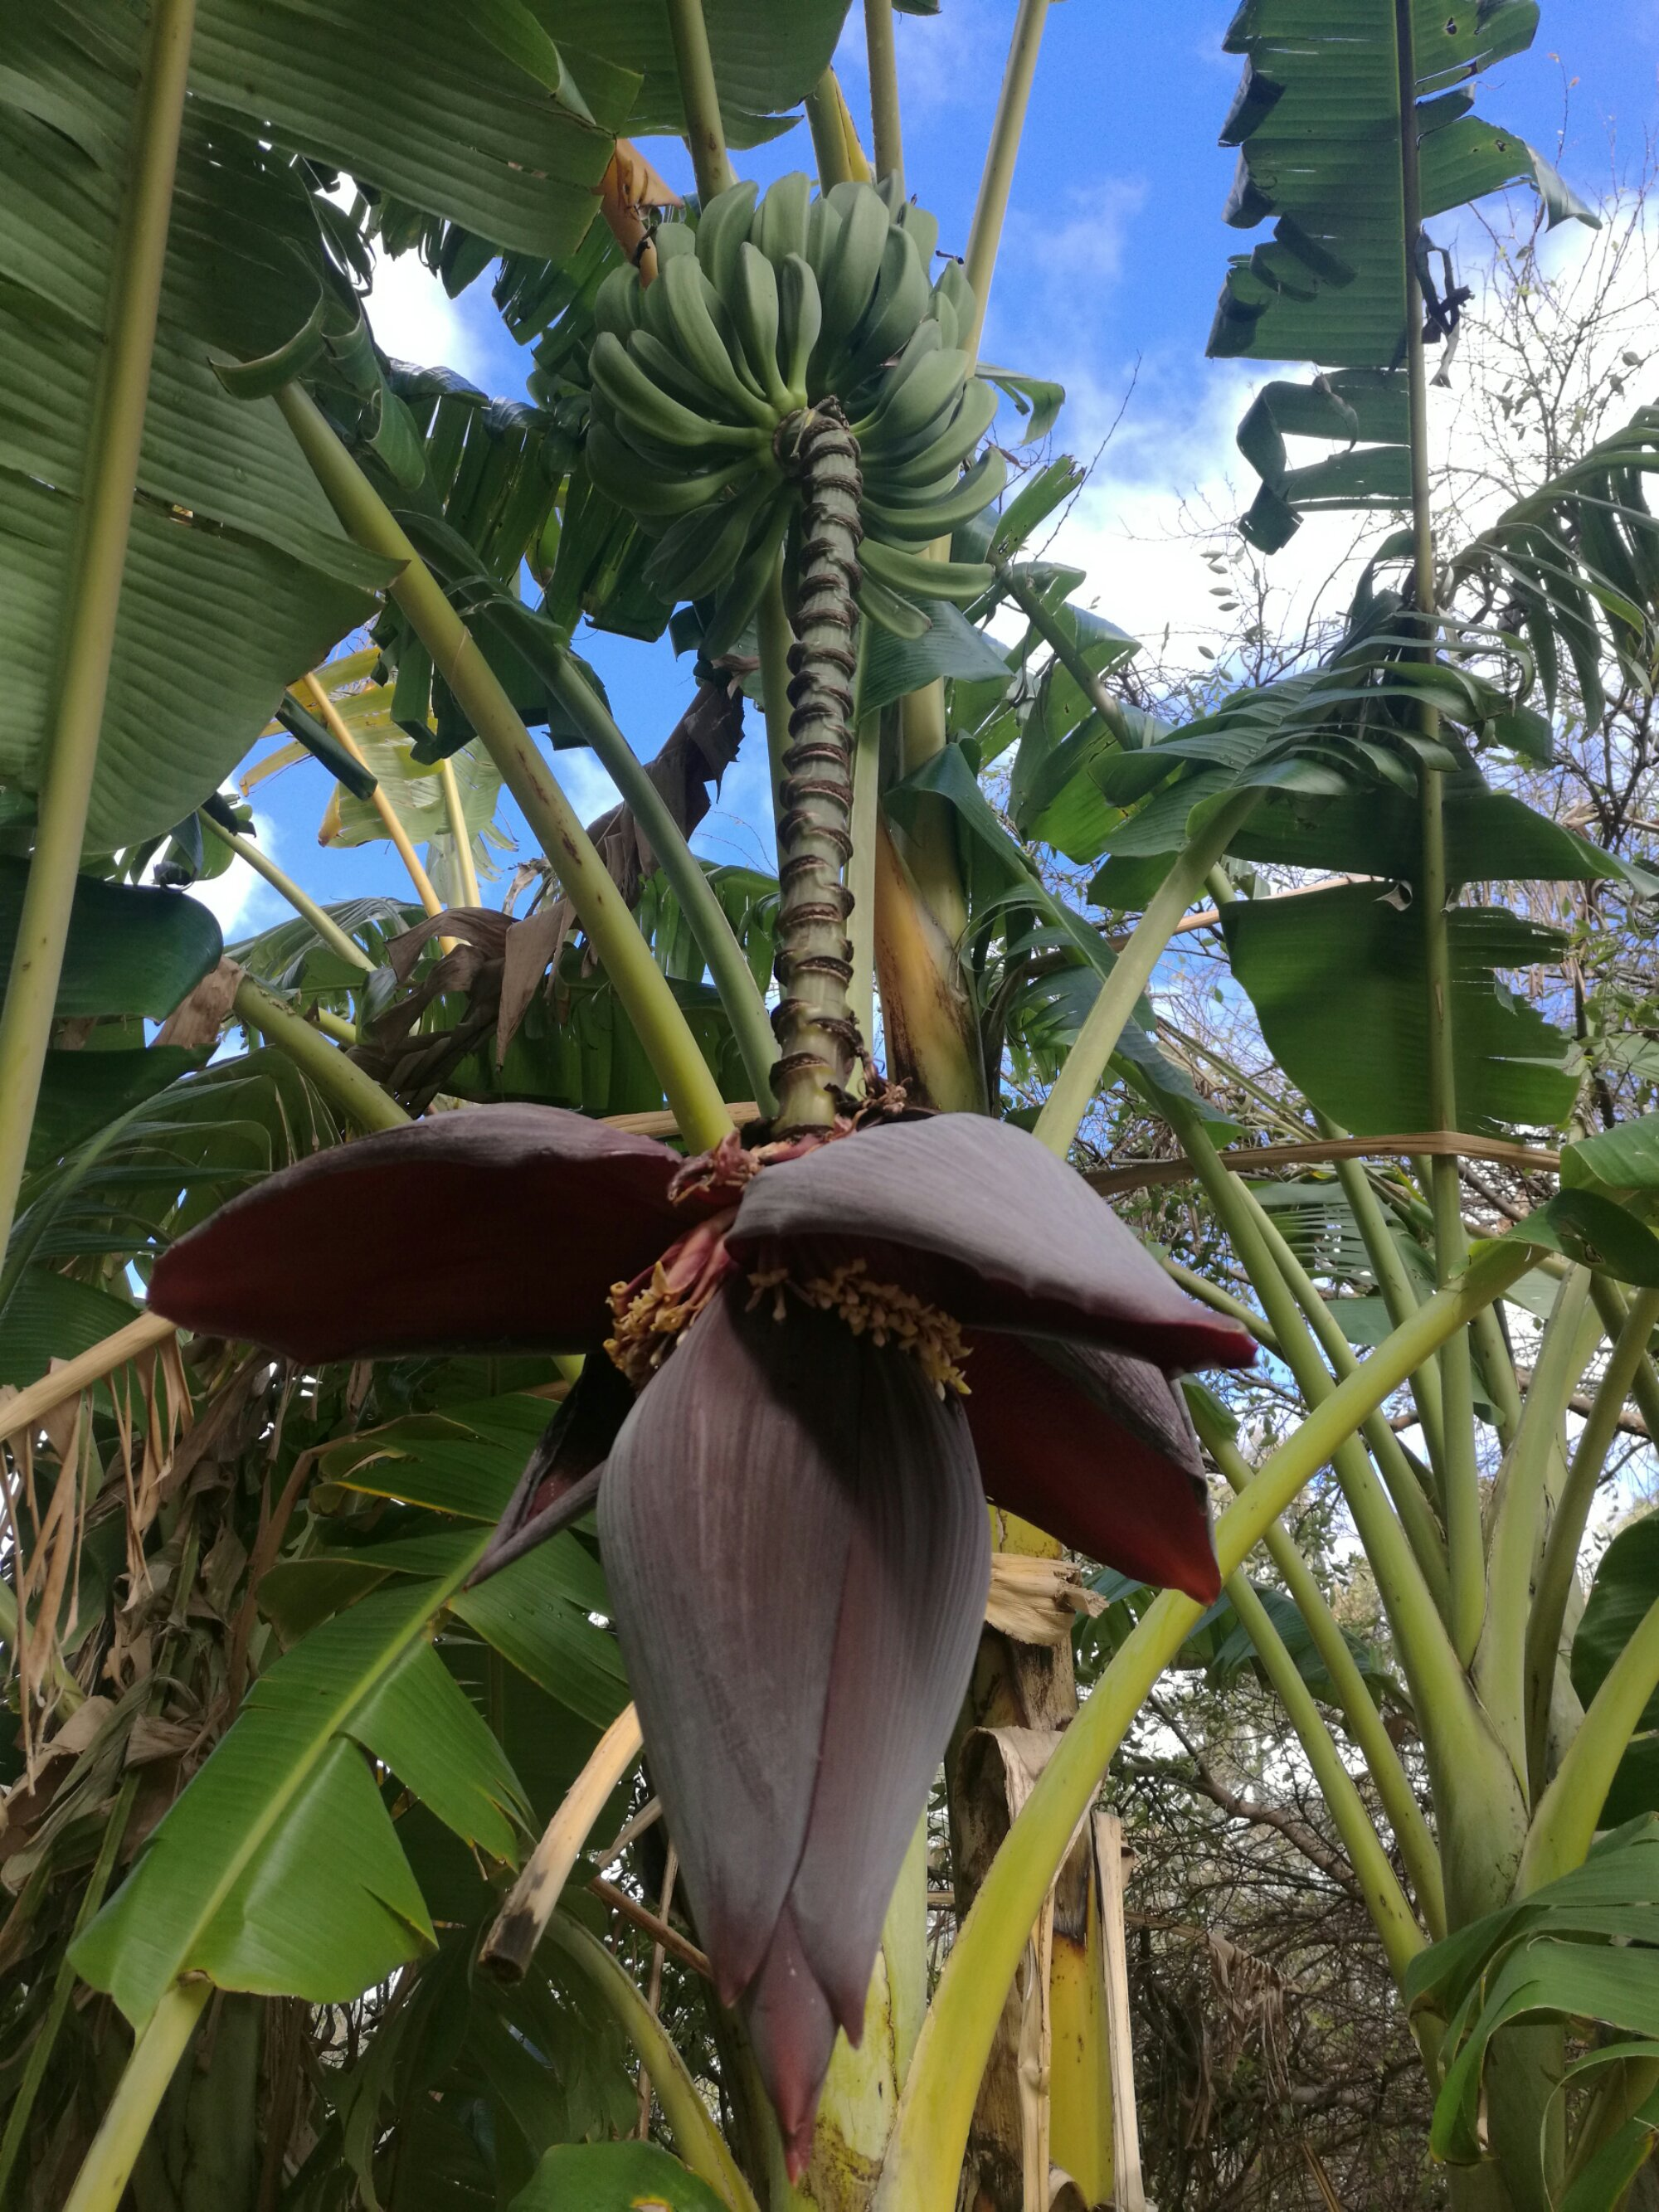 Bananas and the flower